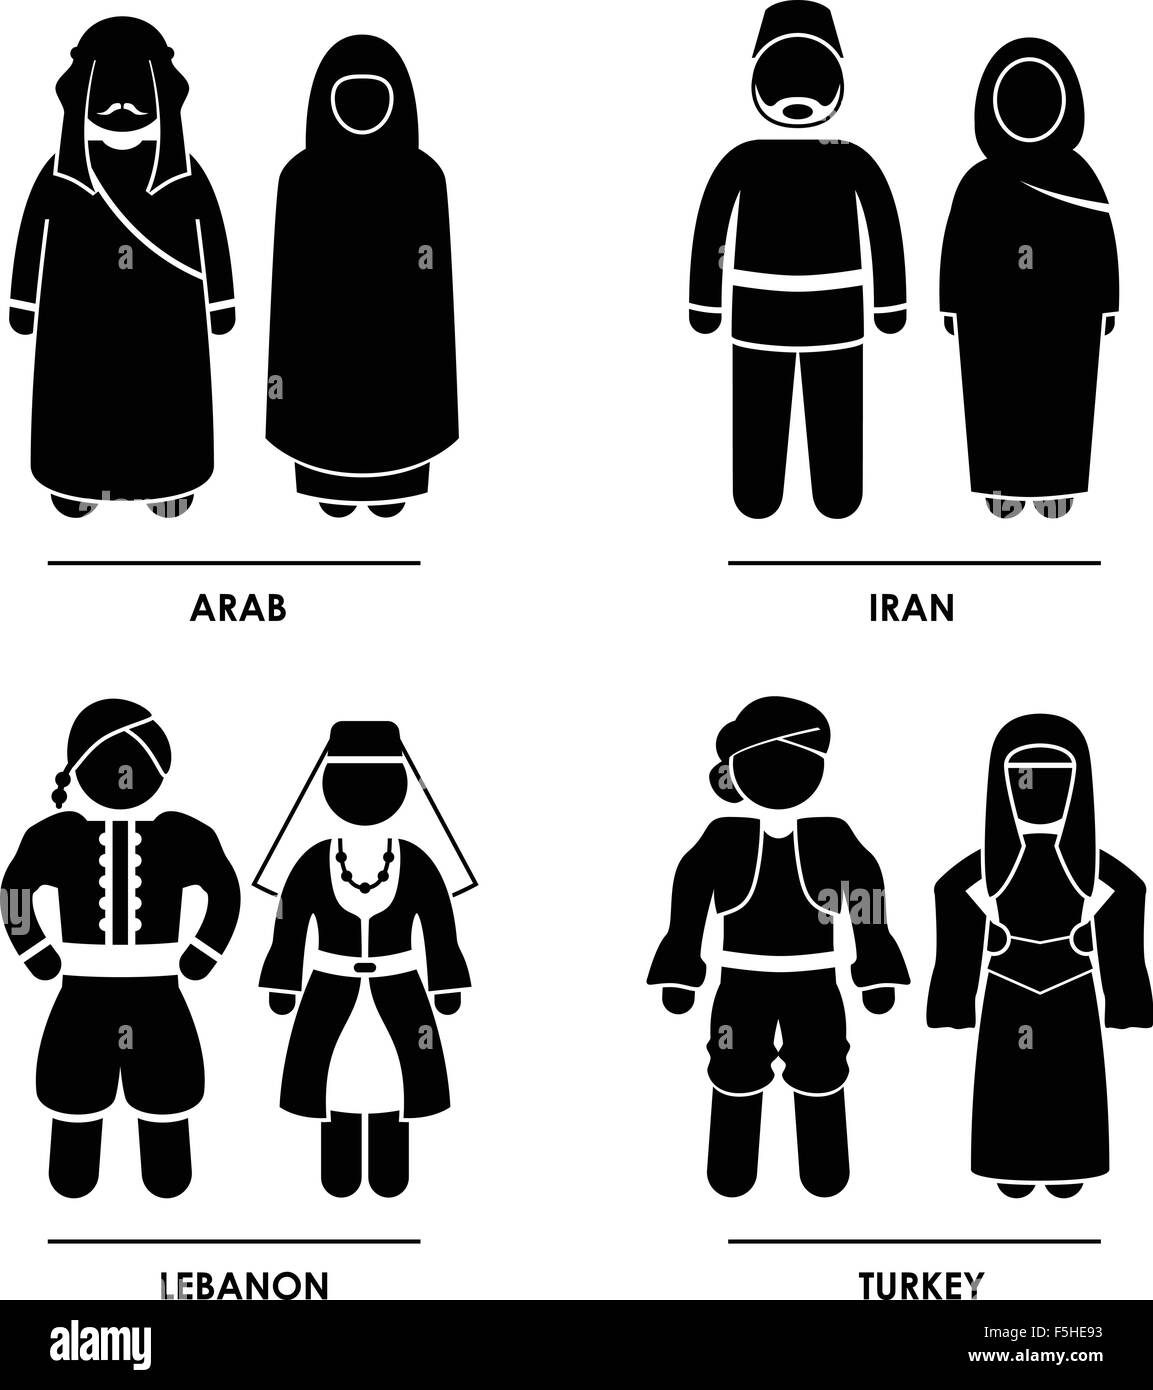 West Asia - Arab Iran Lebanon Turkey Man Woman National Traditional Costume Dress Clothing Icon Symbol Sign Pictogram Stock Vector